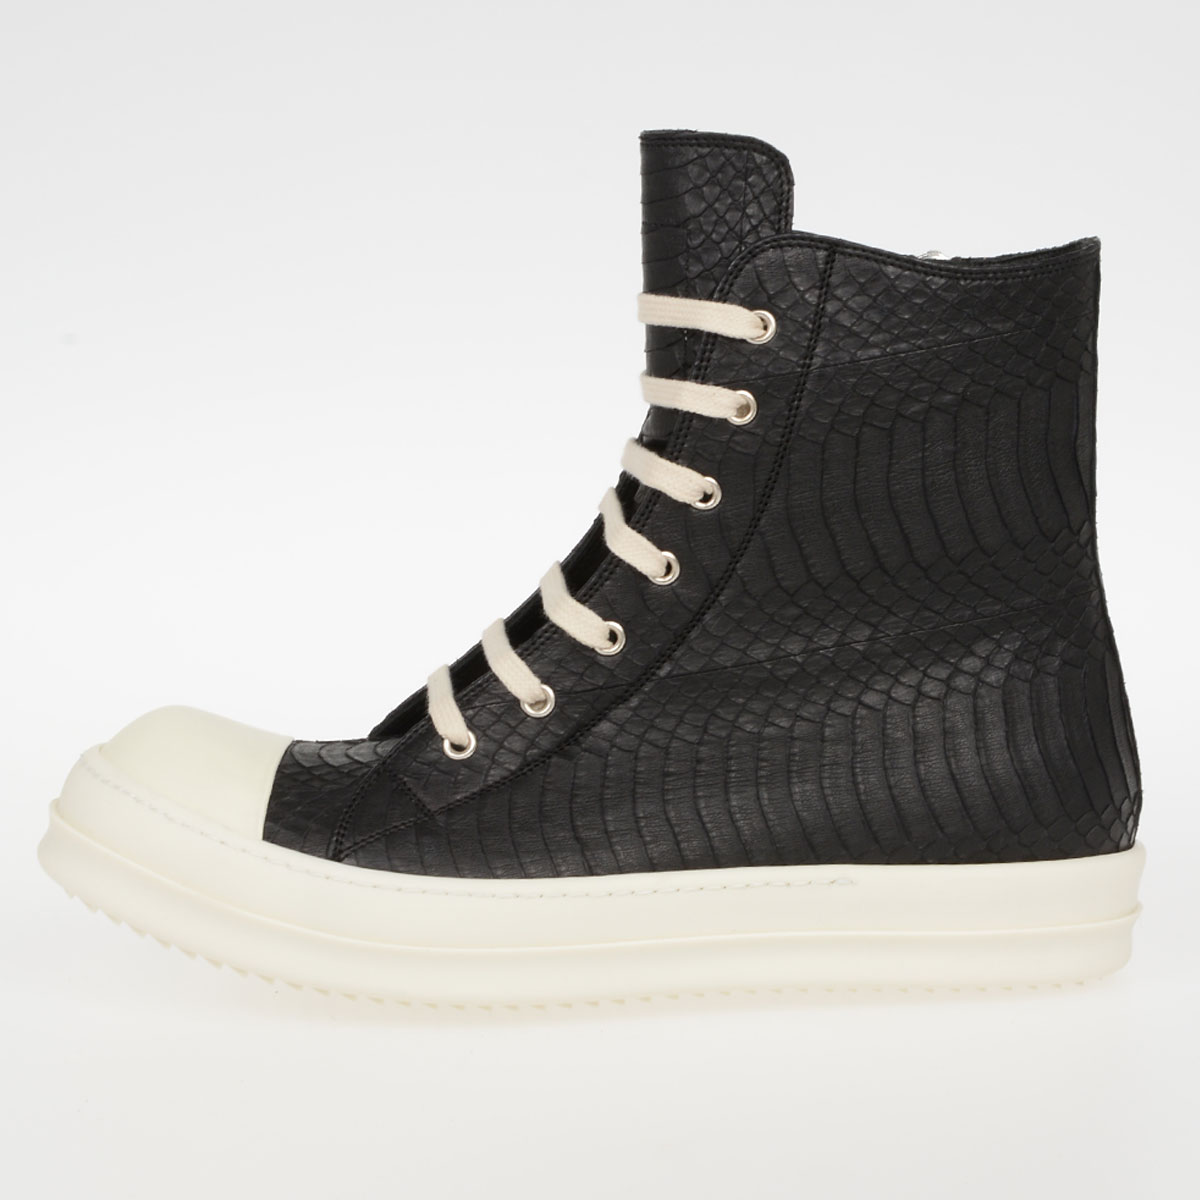 Rick Owens Uomo SNEAKERS SNAKE in Serpente BLACK WB - Glamood Outlet 3216384a0d9